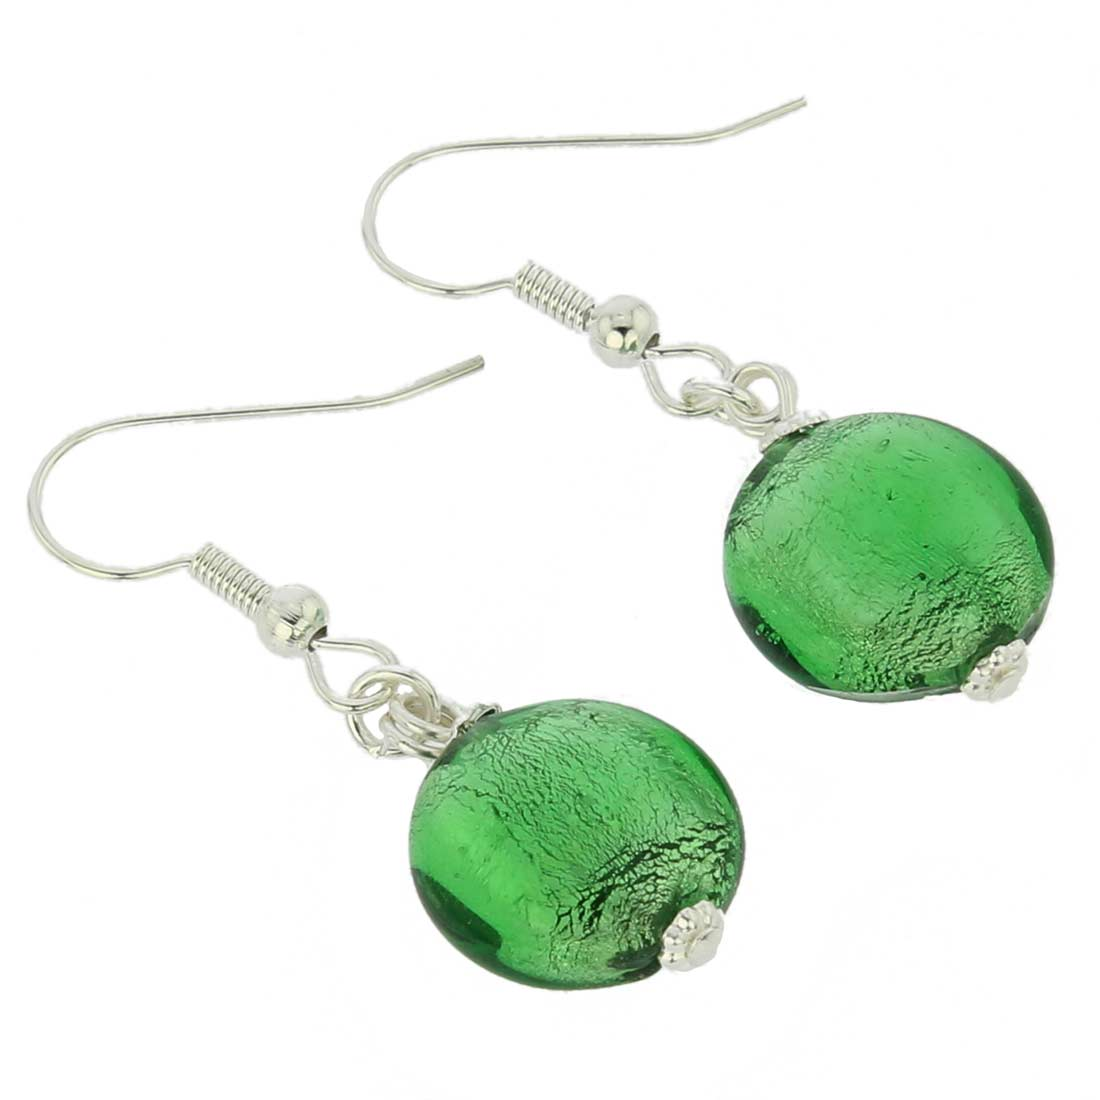 Antico Tesoro Disk Earrings - Silver Ocean